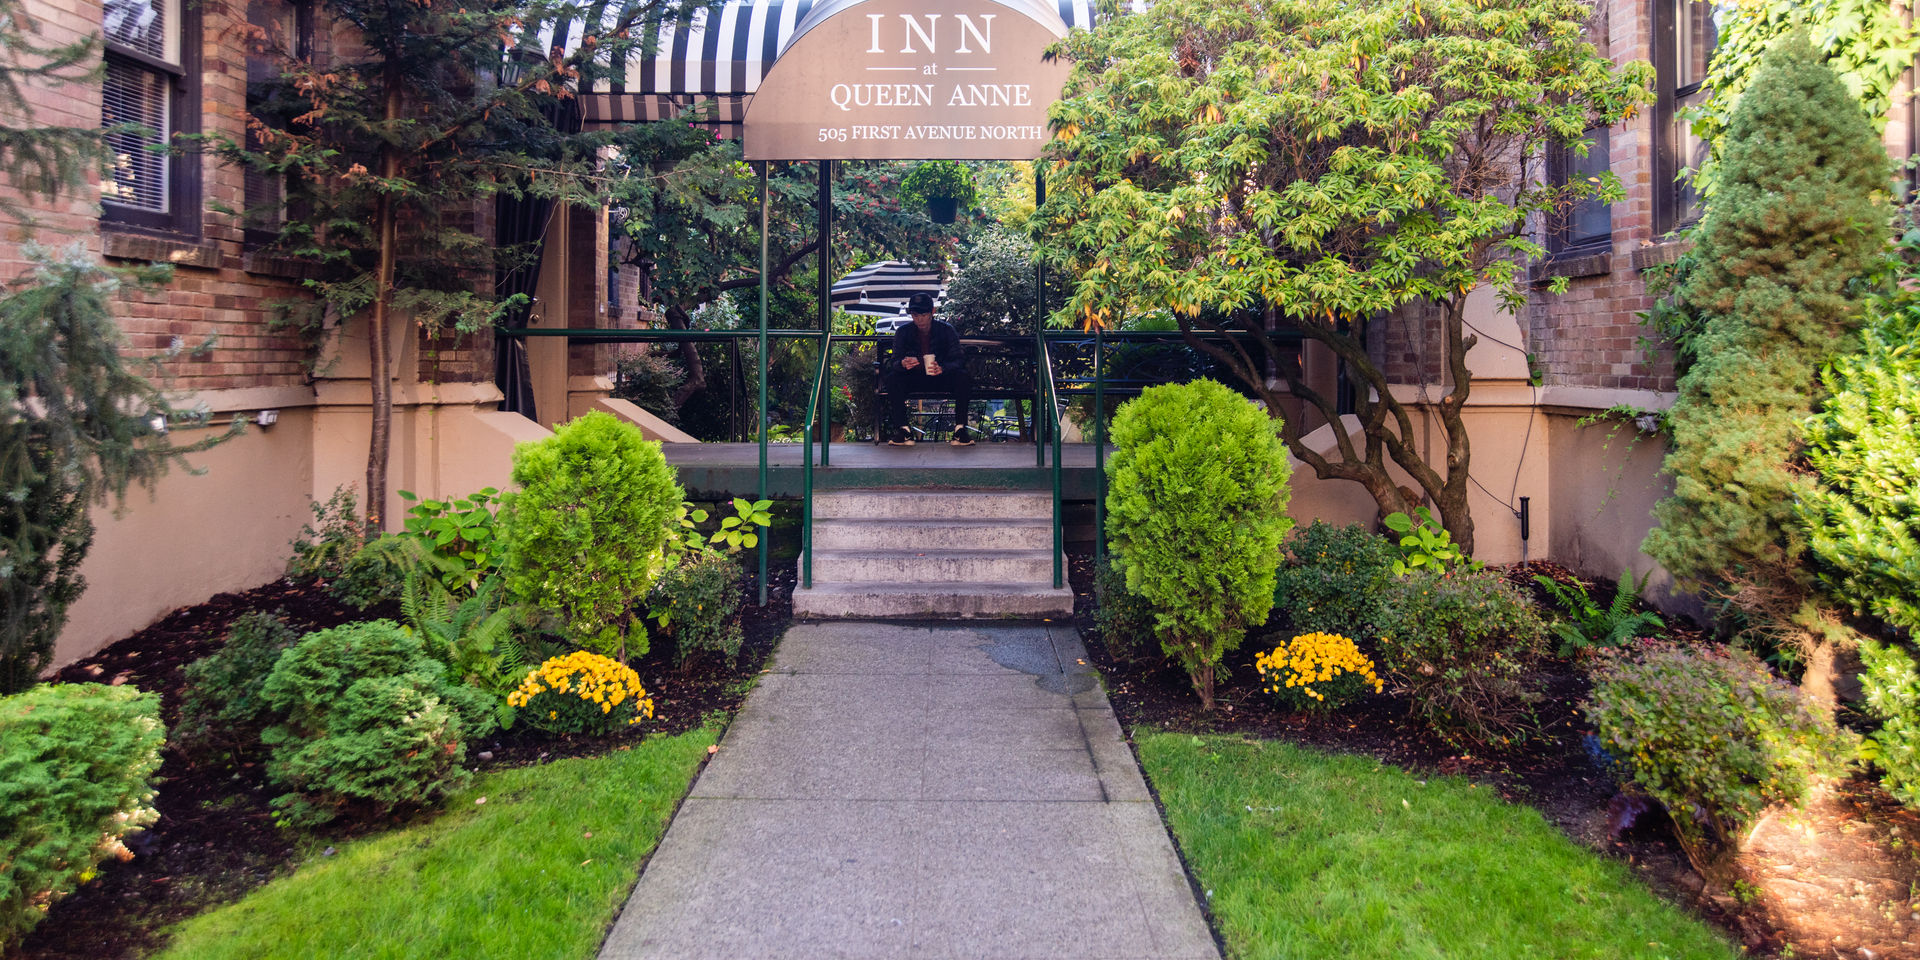 exterior of inn at queen anne